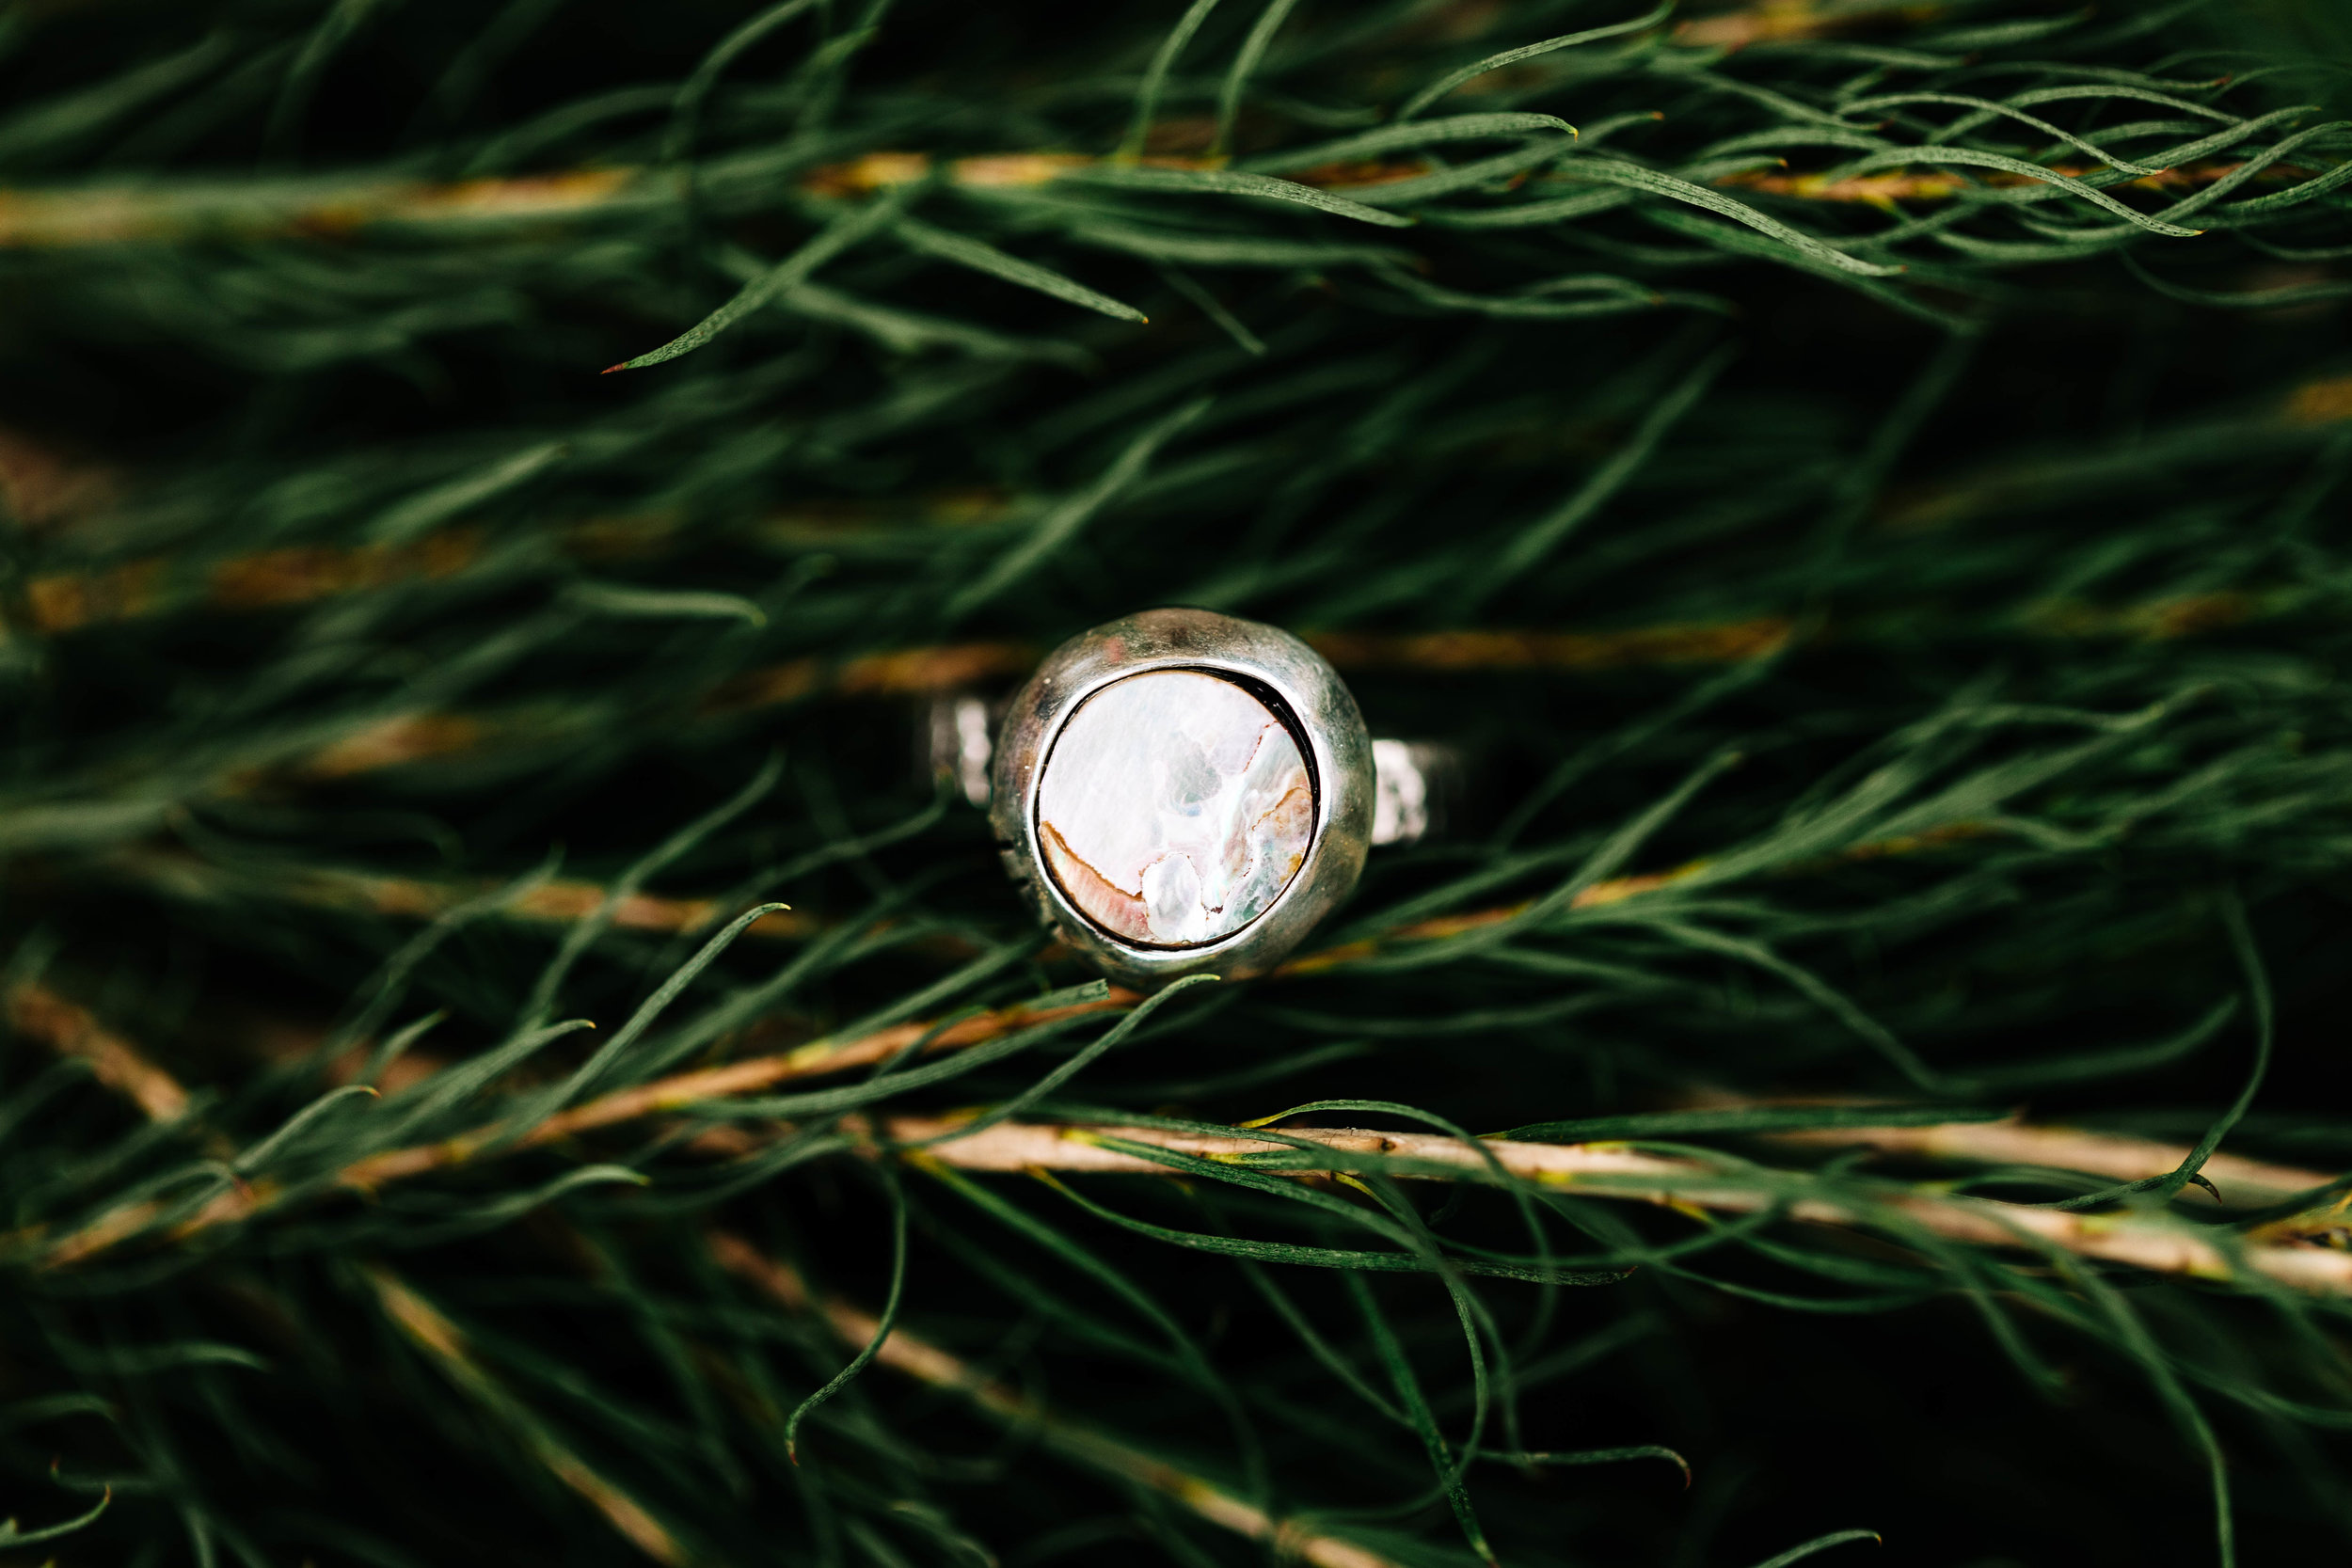 Handmade engagement ring with cloudy stone | Camper Van Elopement in Colorado | Colorado mountain wedding photographers